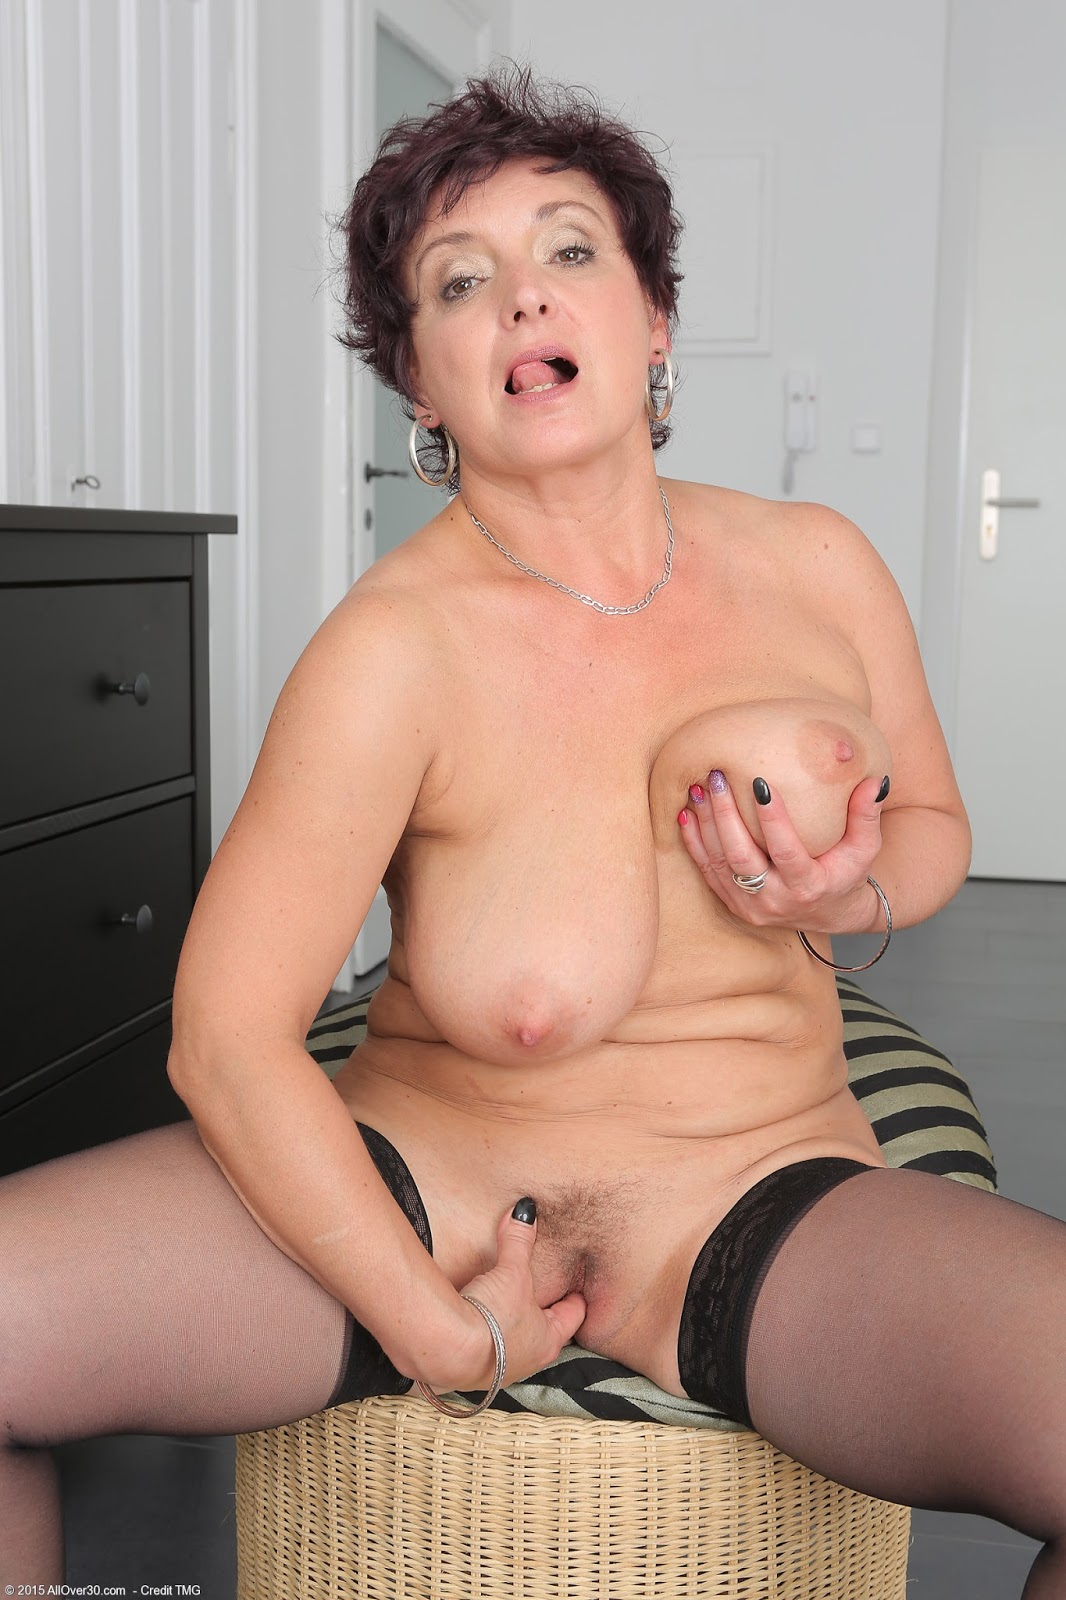 Old Female Porn archive of old women older women porn photos nude picture